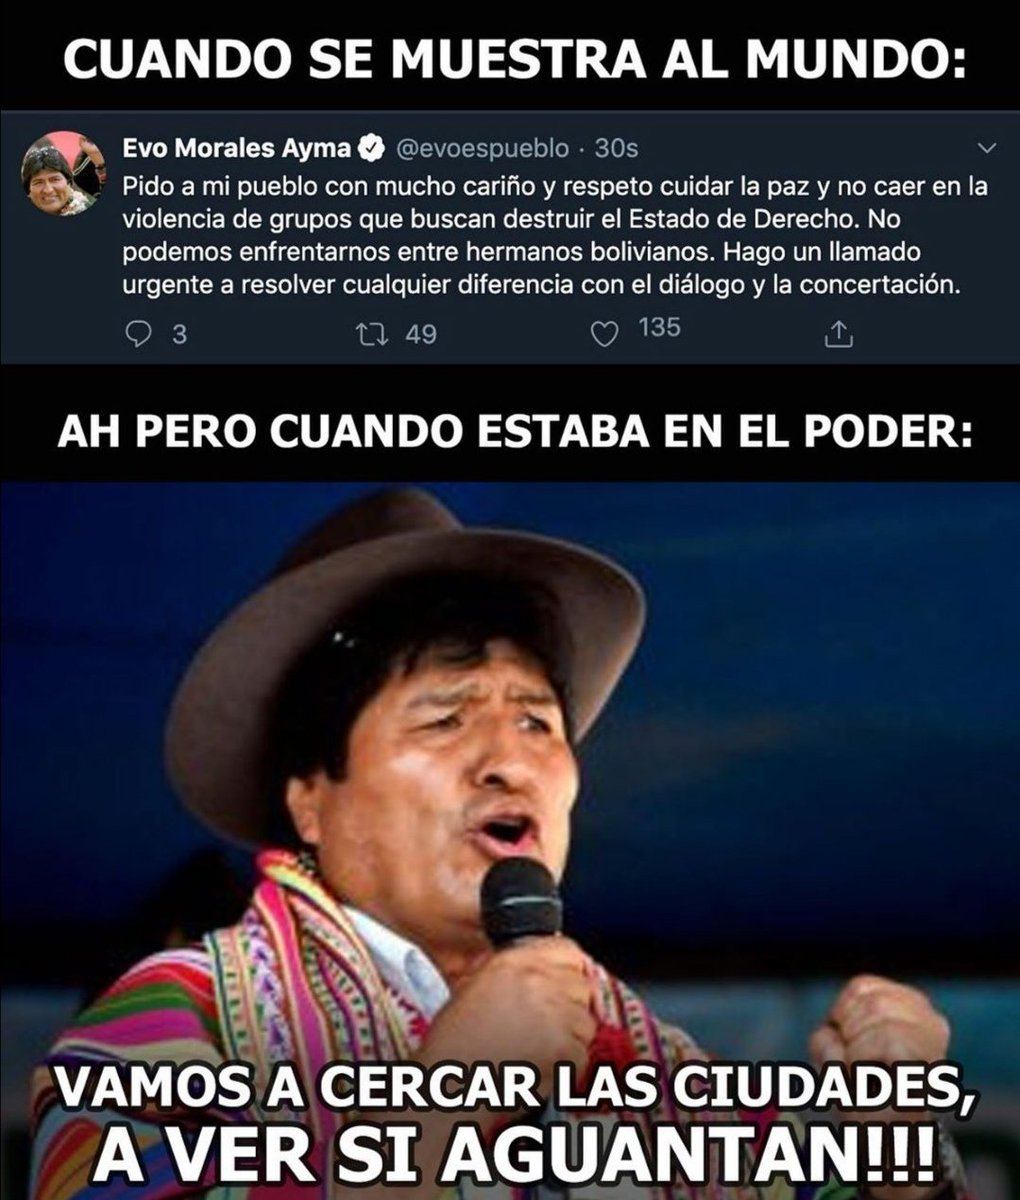 """This is exactly how @evoespueblo victimizes himself in front of the world, but he doesn't talk about haw he tratened our country w fences """"to see if they endure"""". If u are not from MY country, please stop talking bulls**t. U don't know everything. #Bolivia #EvoDictadorFuera <br>http://pic.twitter.com/fnkakl2h61"""